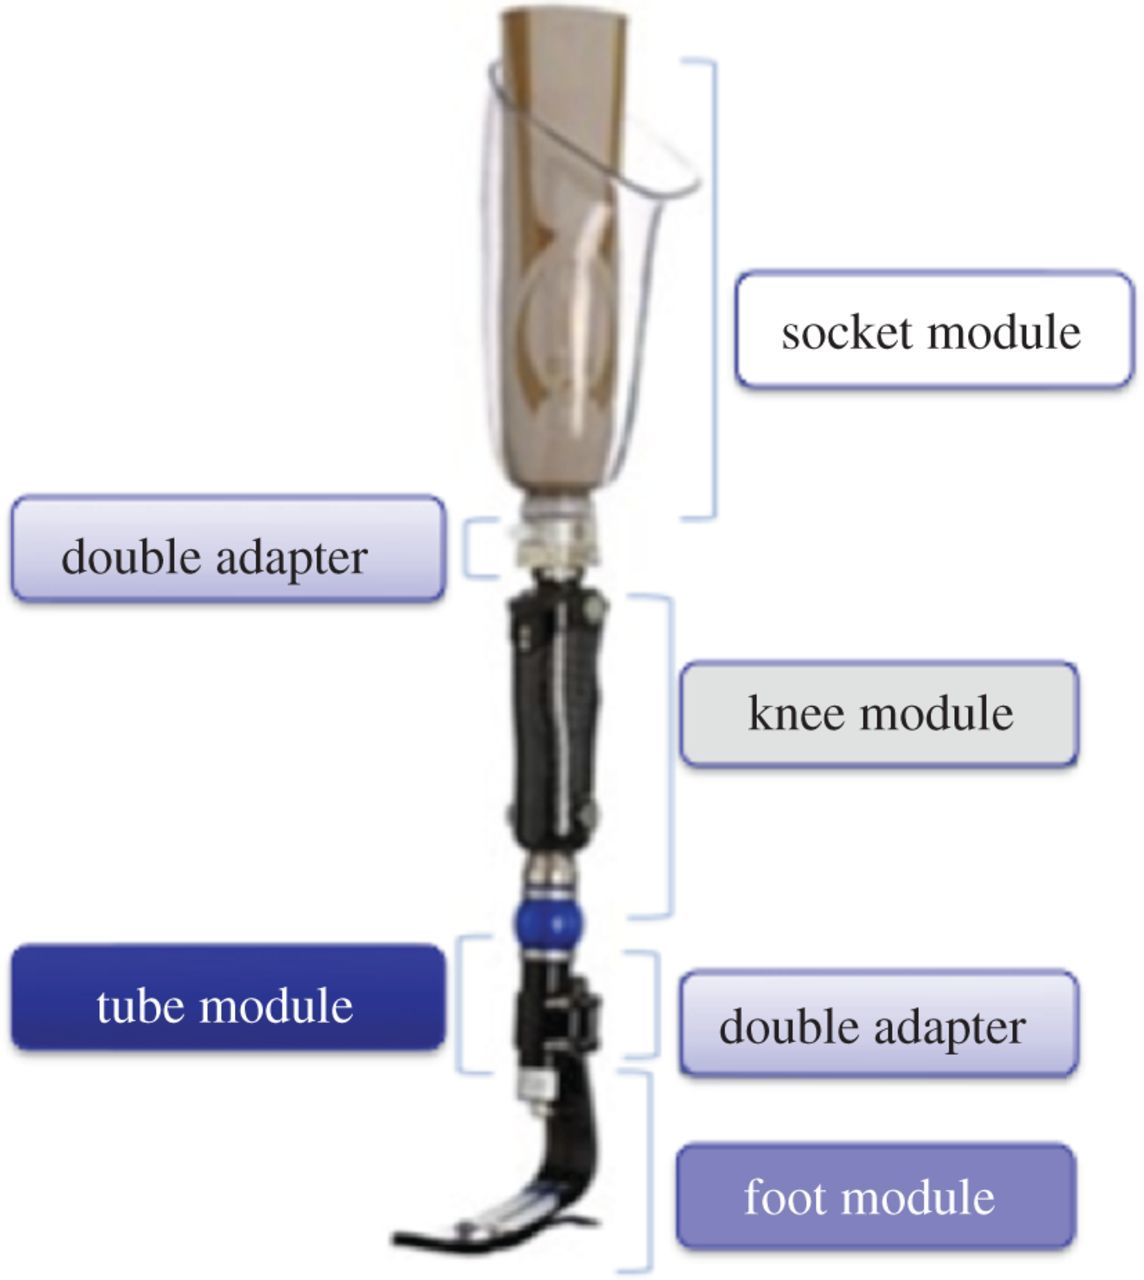 A digital patient for computer-aided prosthesis design | Interface Focus